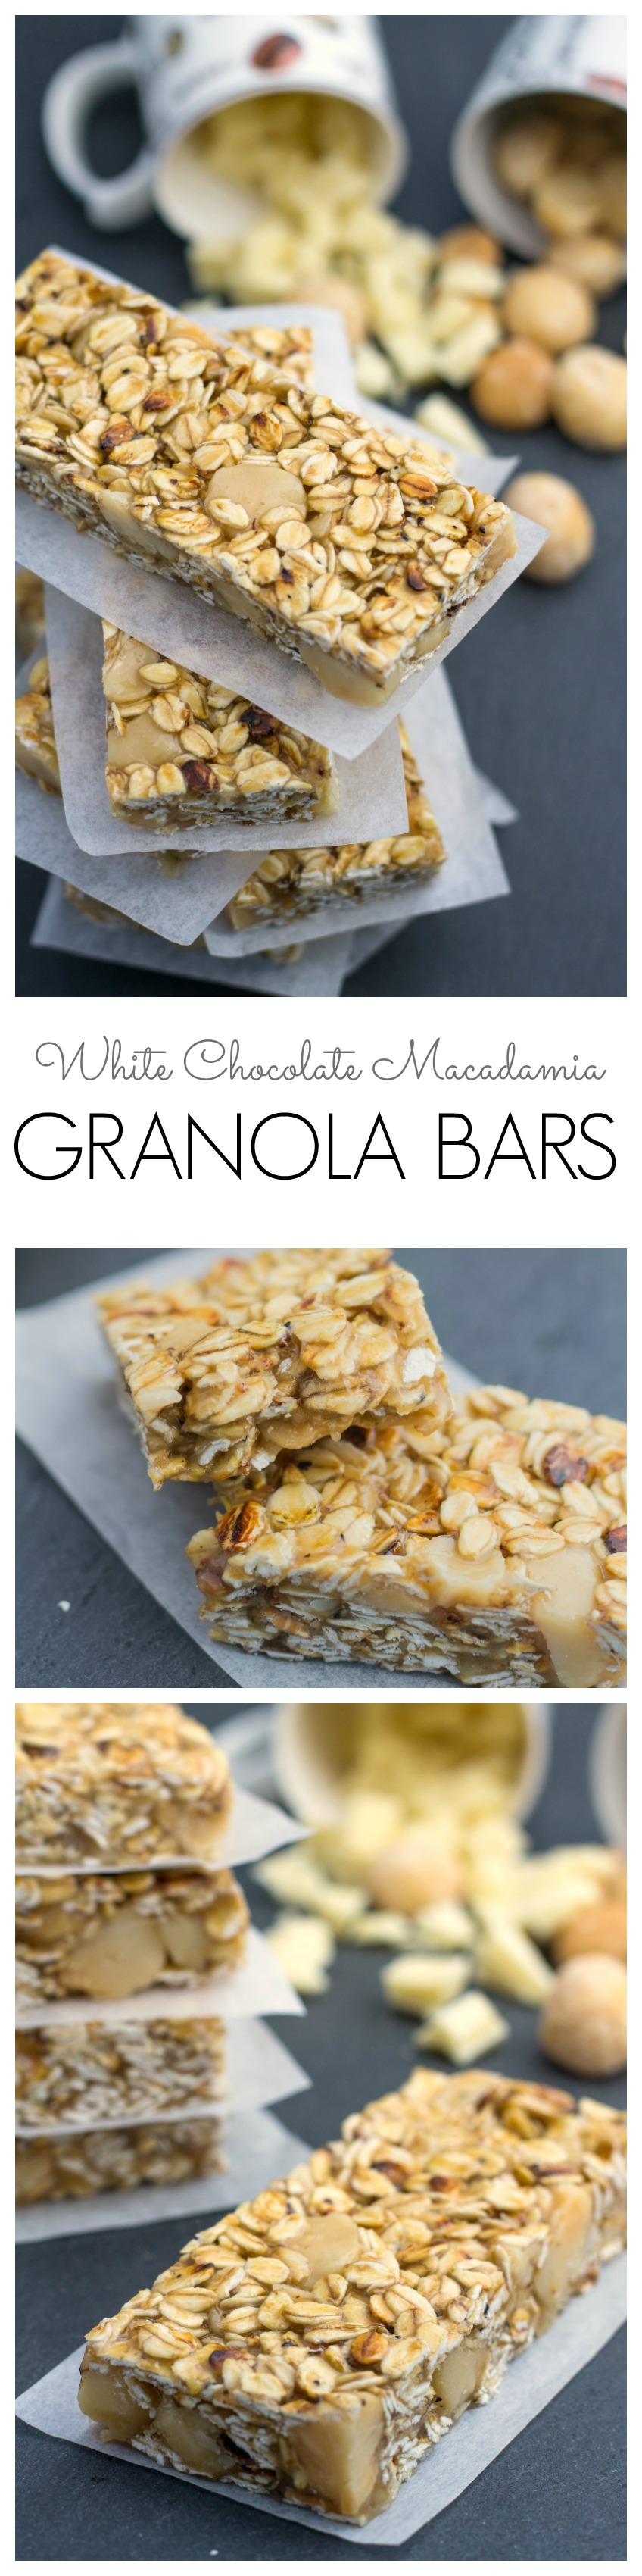 White Chocolate Macadamia Granola Bar